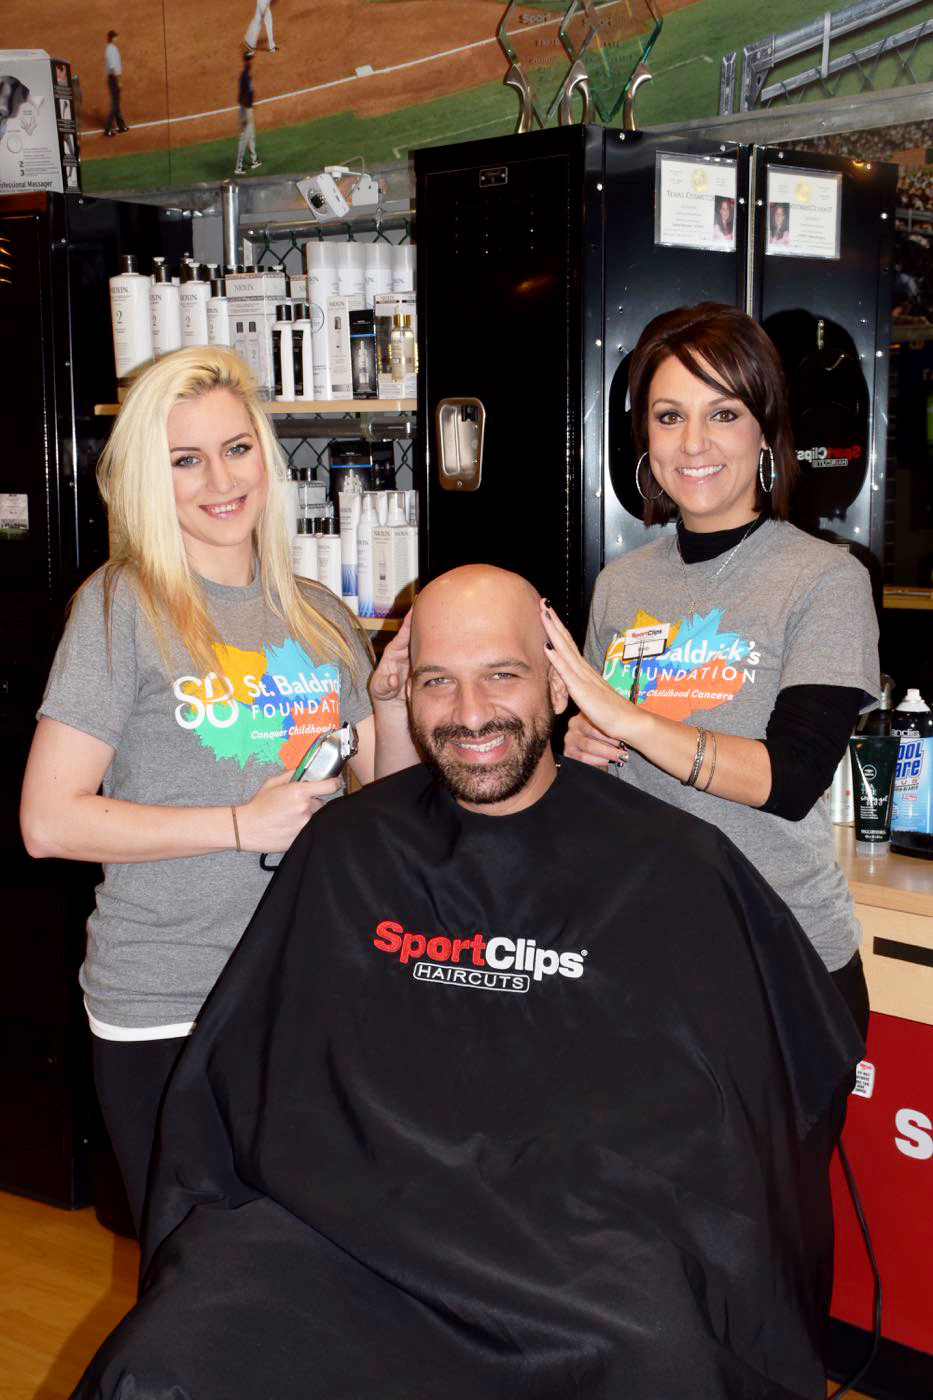 St. Baldrick's Foundation and Sport Clips Haircuts Partner to Support Childhood Cancer Research